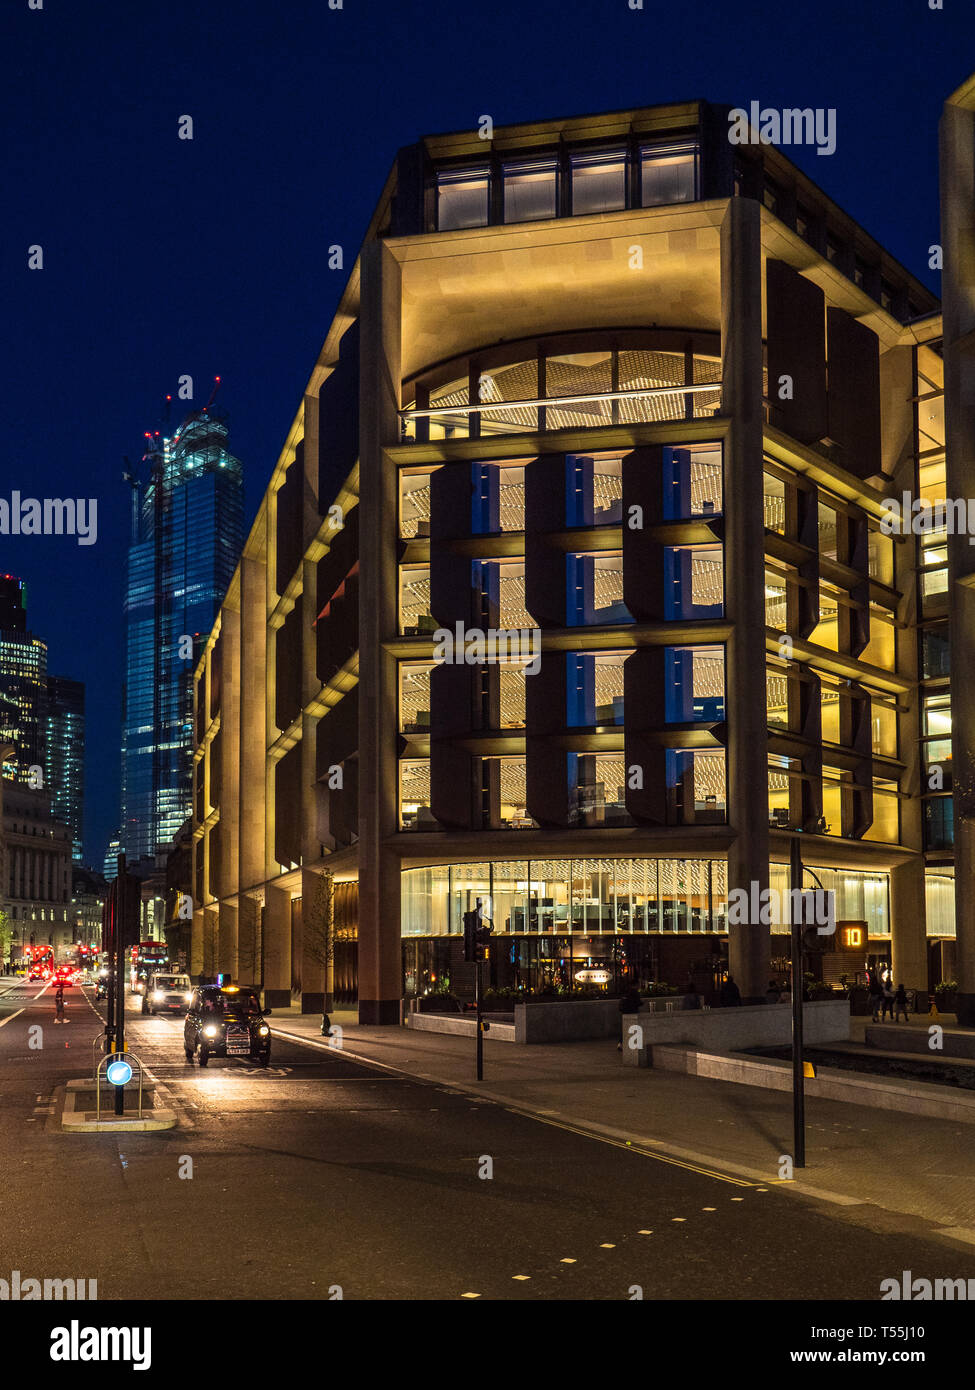 Bloomberg Building London at Night - European HQ of Bloomberg L.P. Opened 2017 architects Foster and Partners - Stock Image